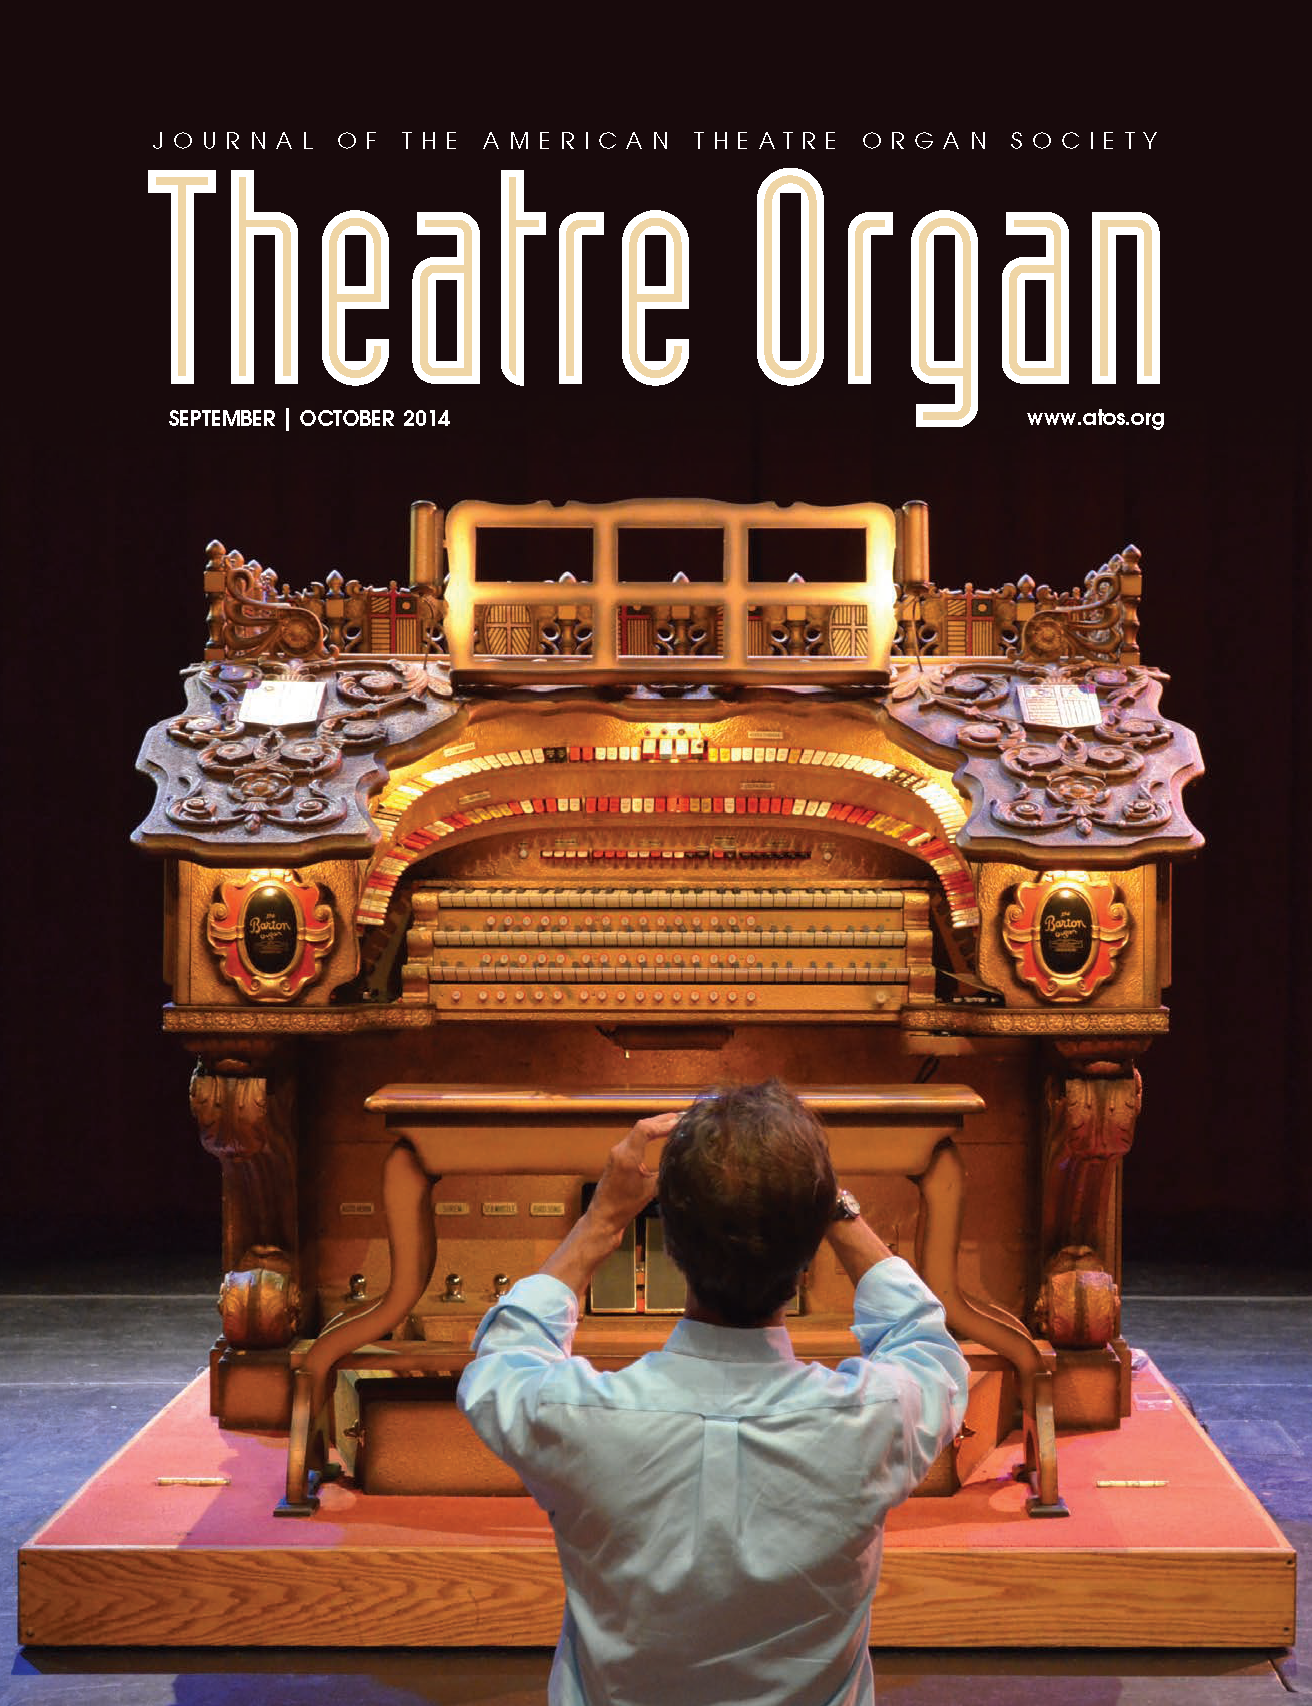 Theatre Organ, September - October 2014, Volume 56, Number 5